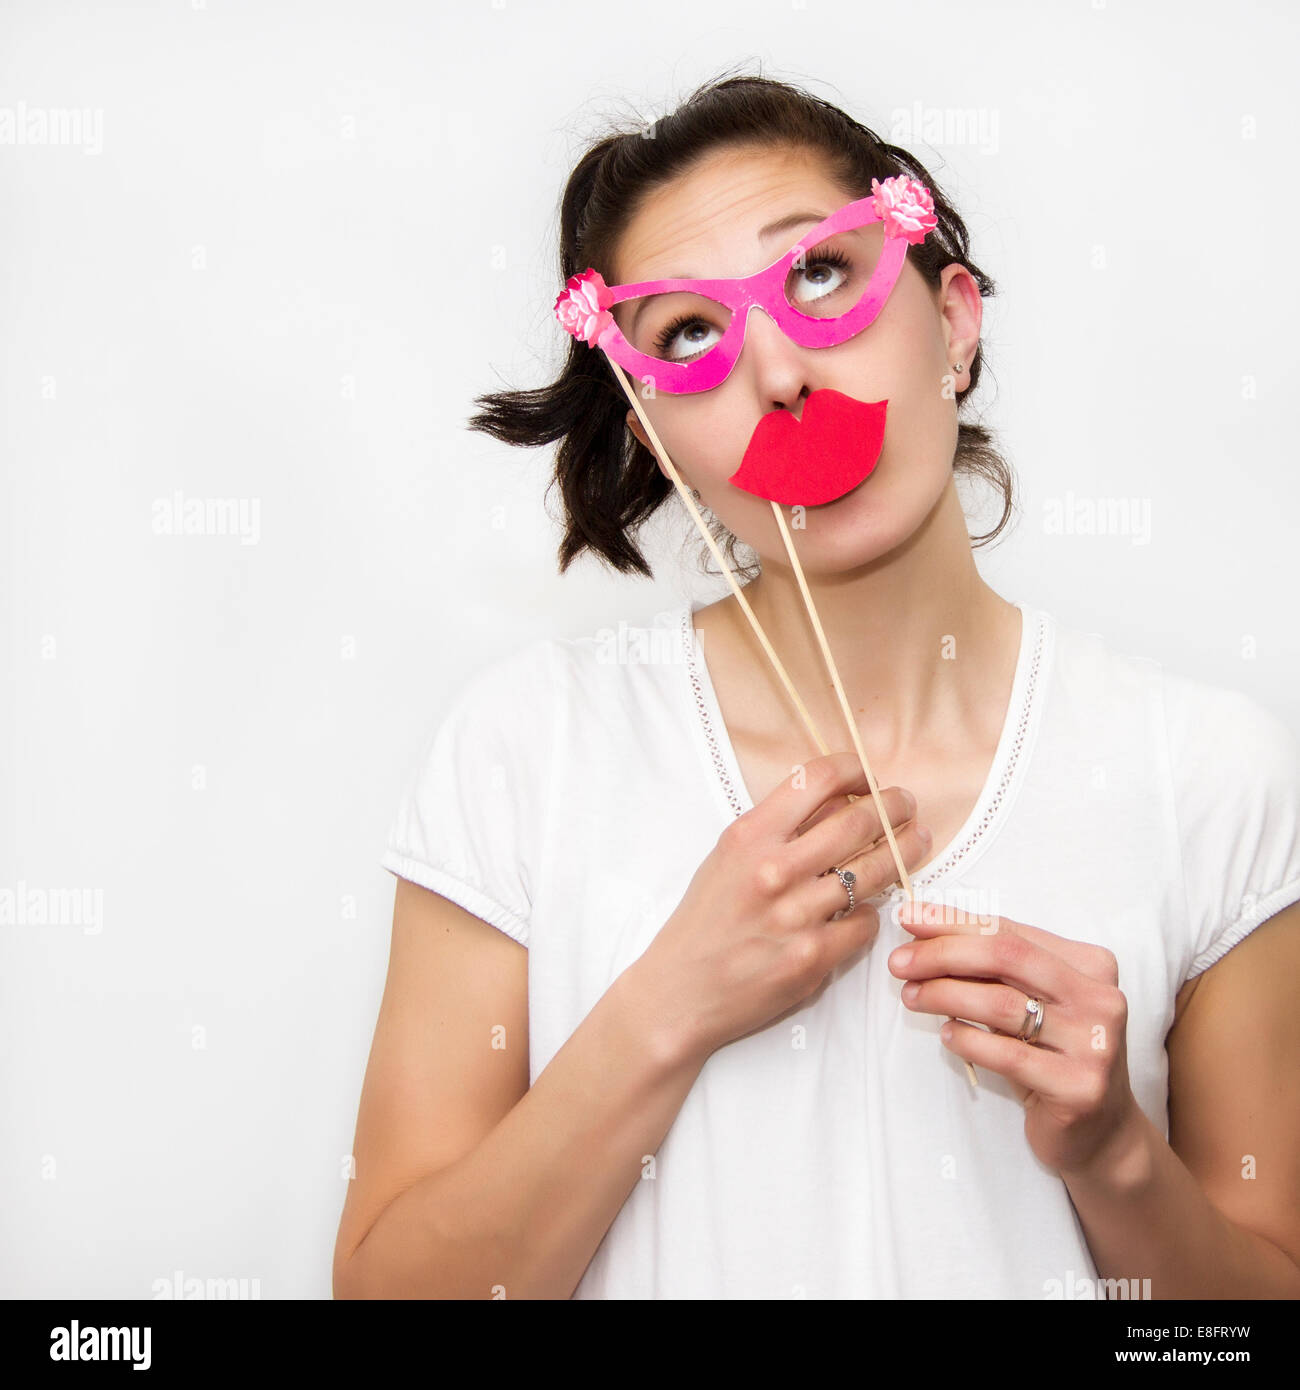 Woman holding lips and glasses masks - Stock Image